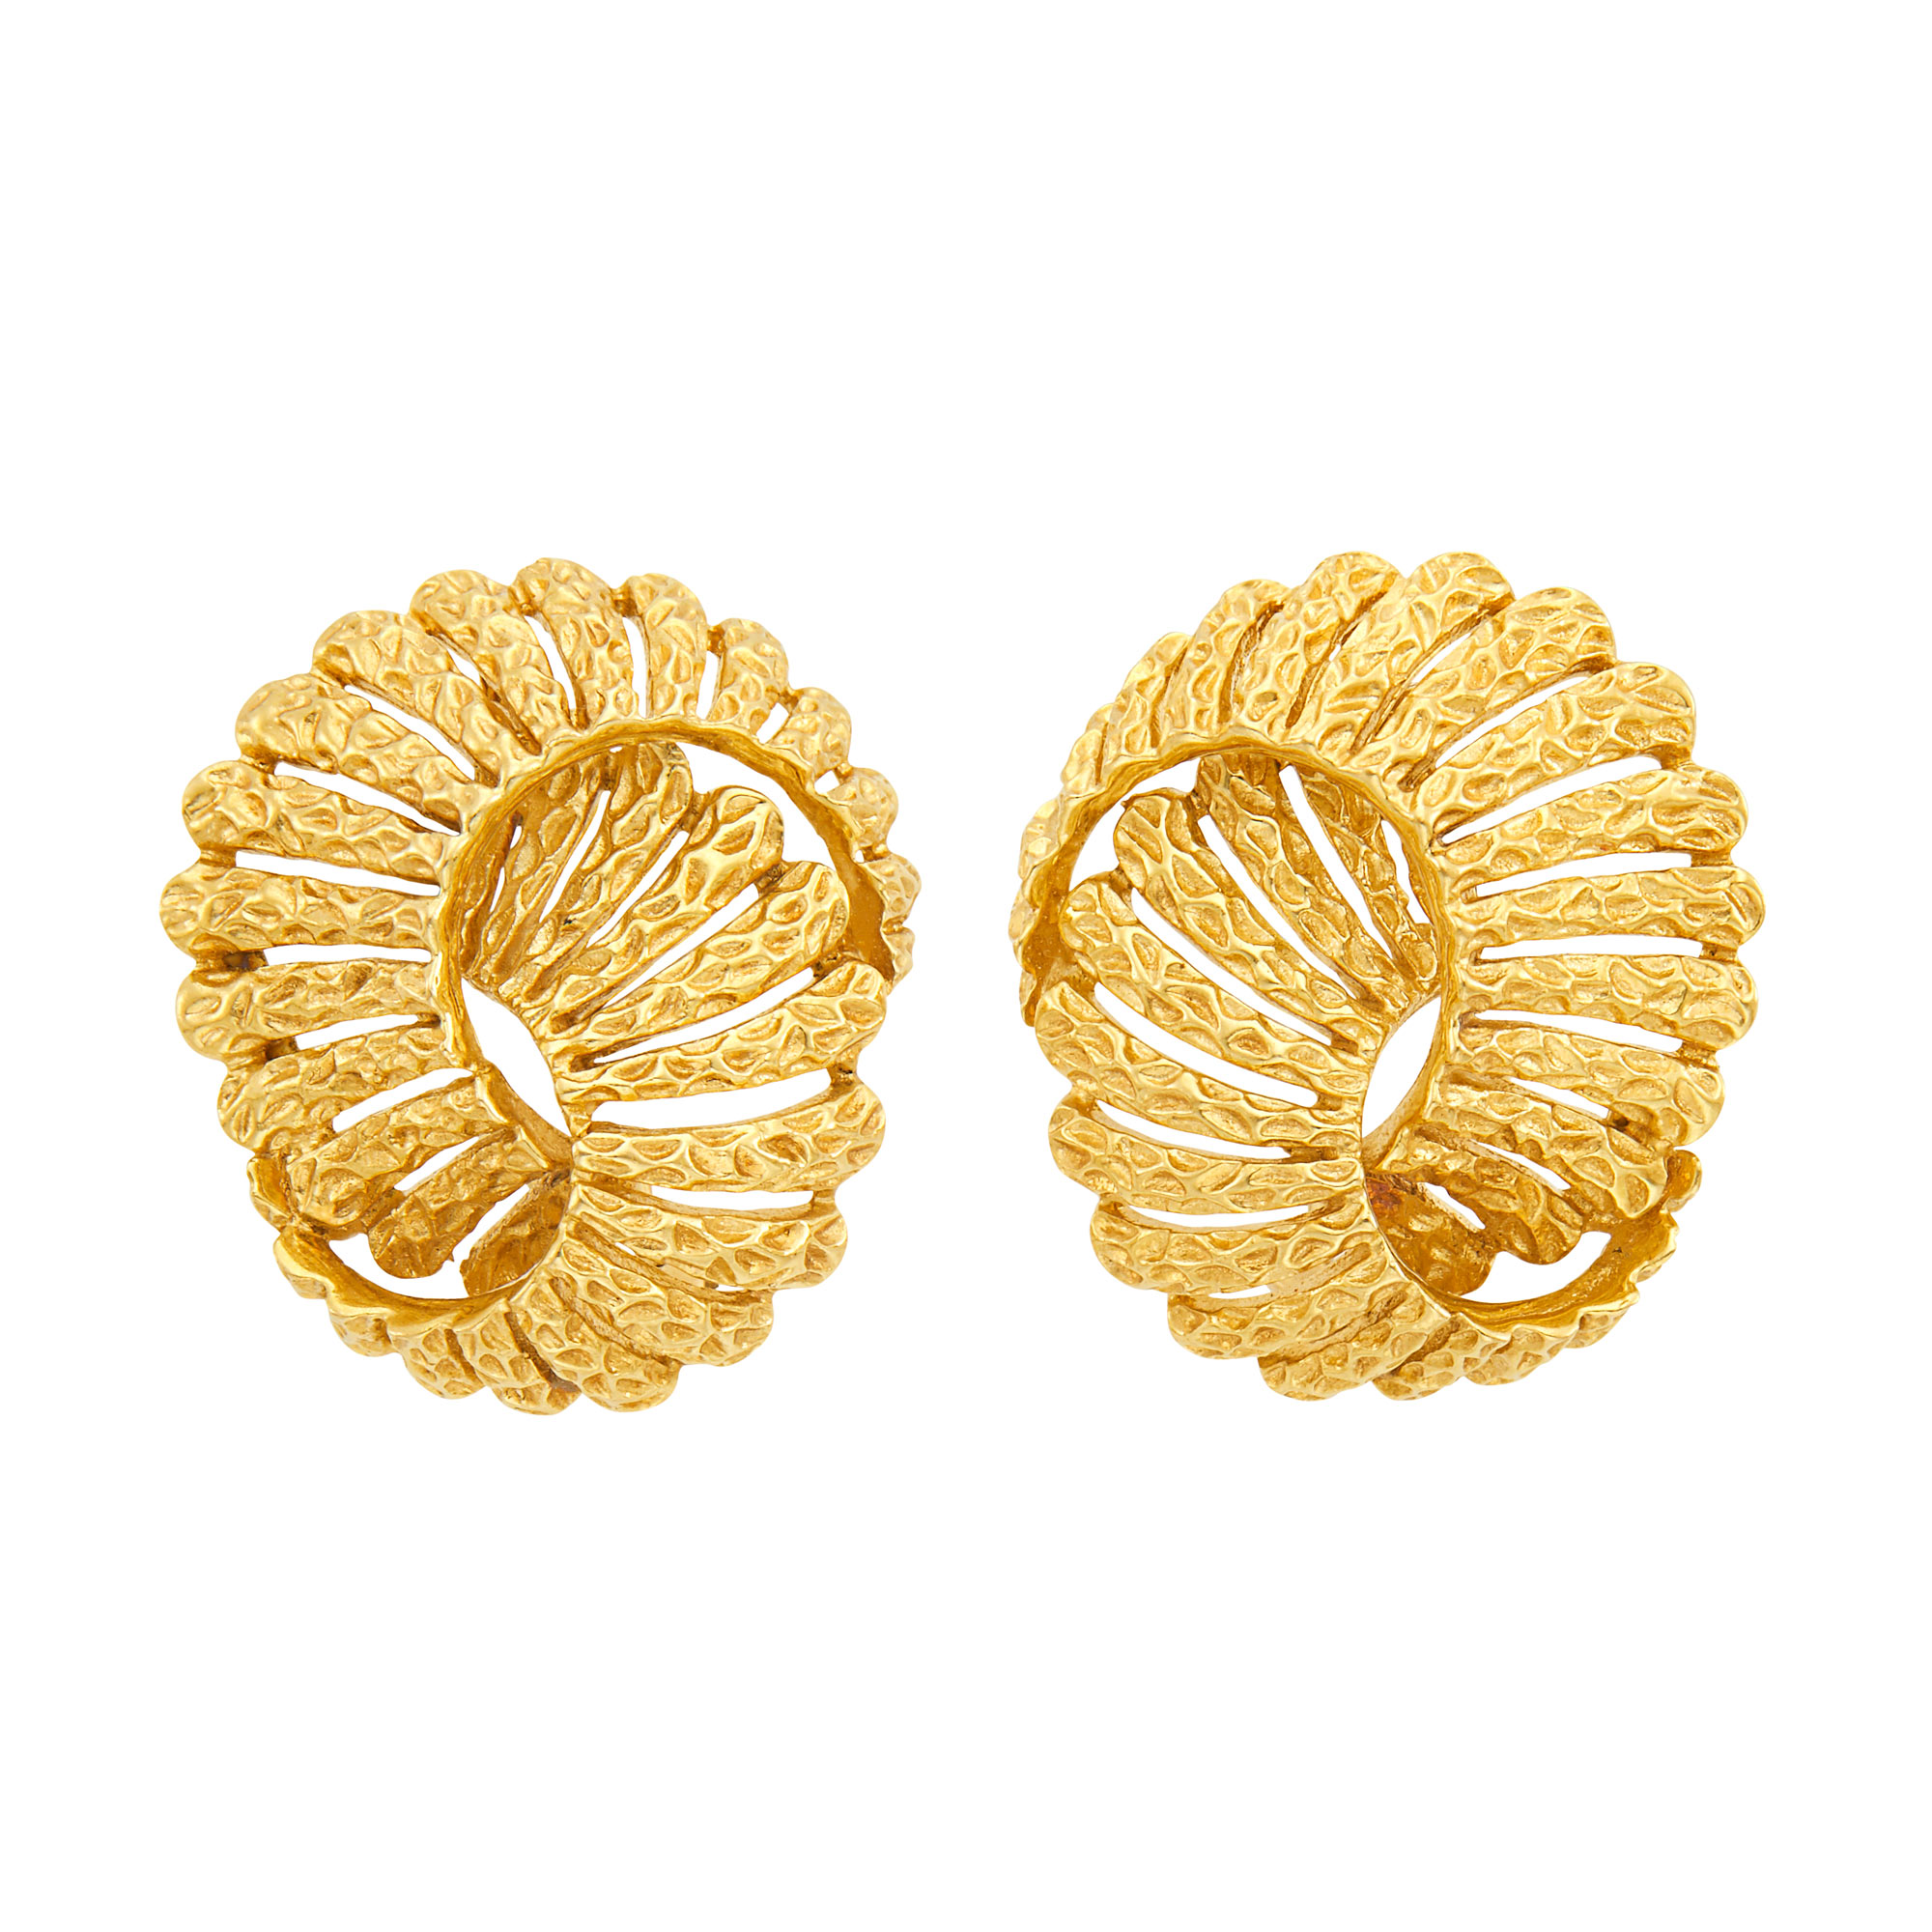 Lot image - Pair of Gold Earclips, Tiffany & Co.